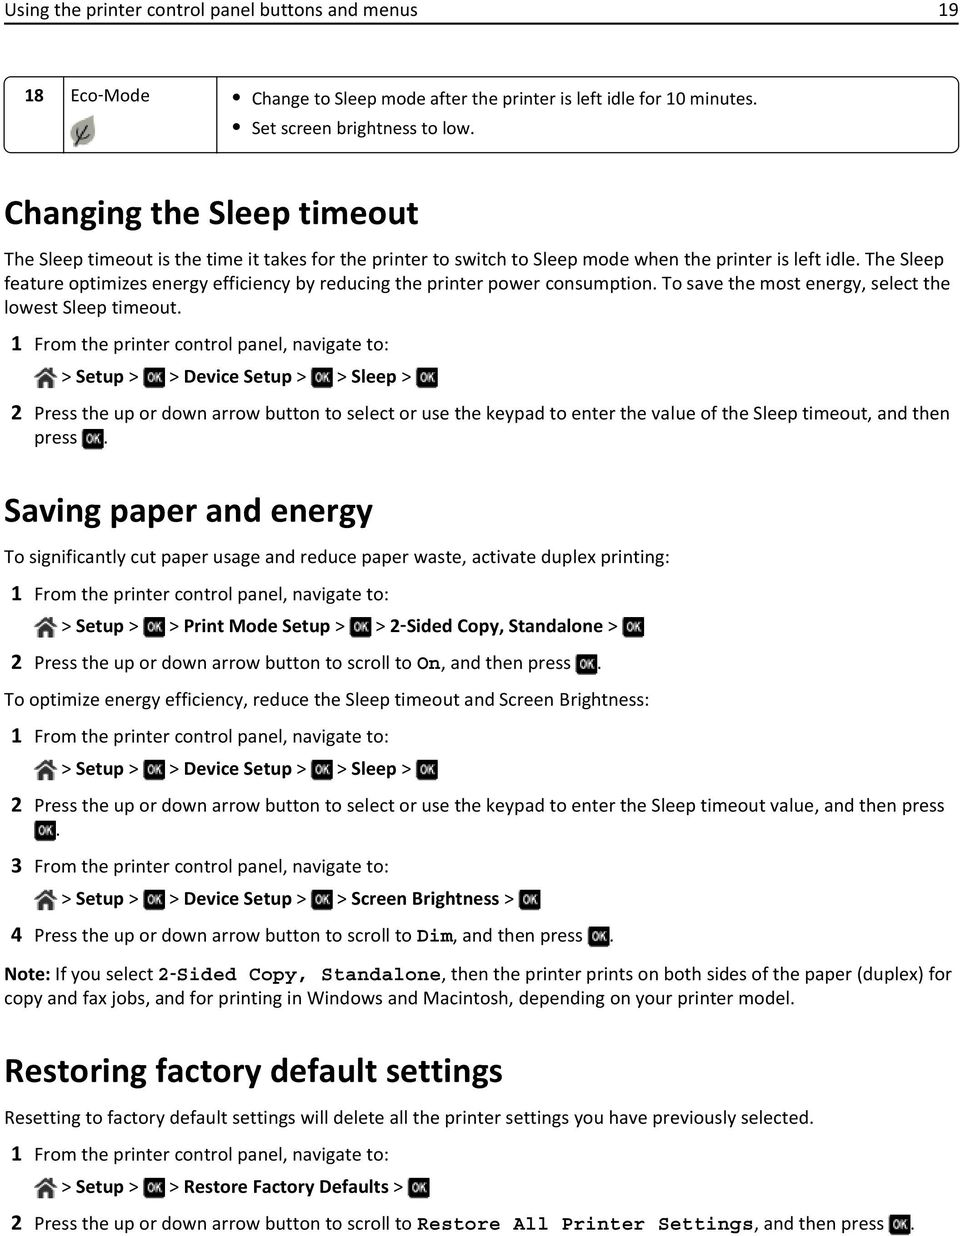 The Sleep feature optimizes energy efficiency by reducing the printer power consumption. To save the most energy, select the lowest Sleep timeout.